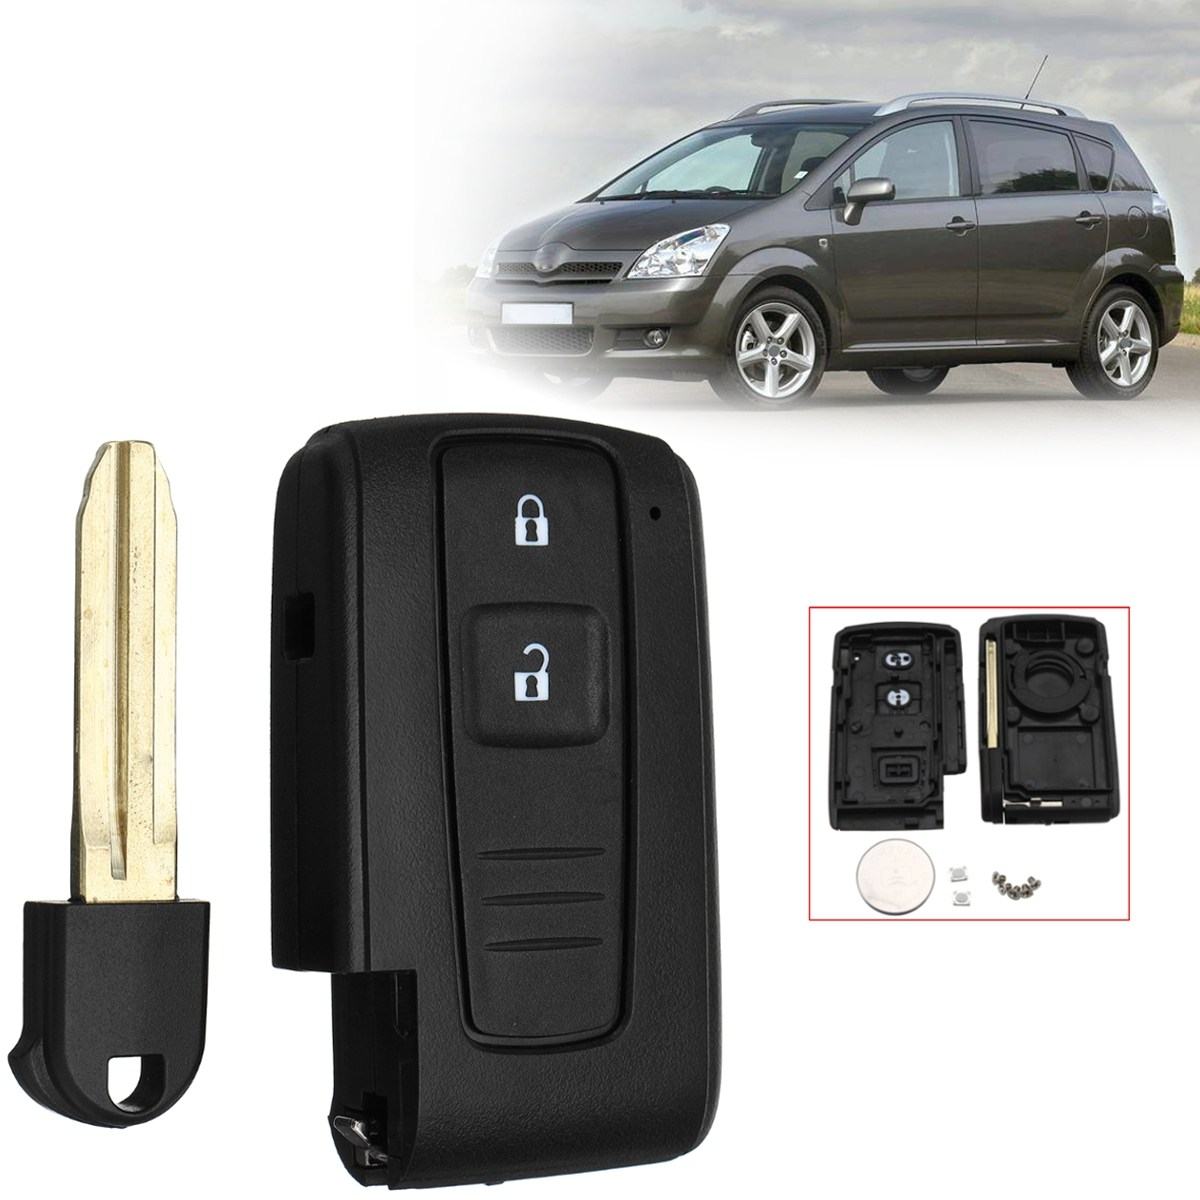 2 Buttons Open Lock Car Remote Key Fob Case Shell With font b Battery b font